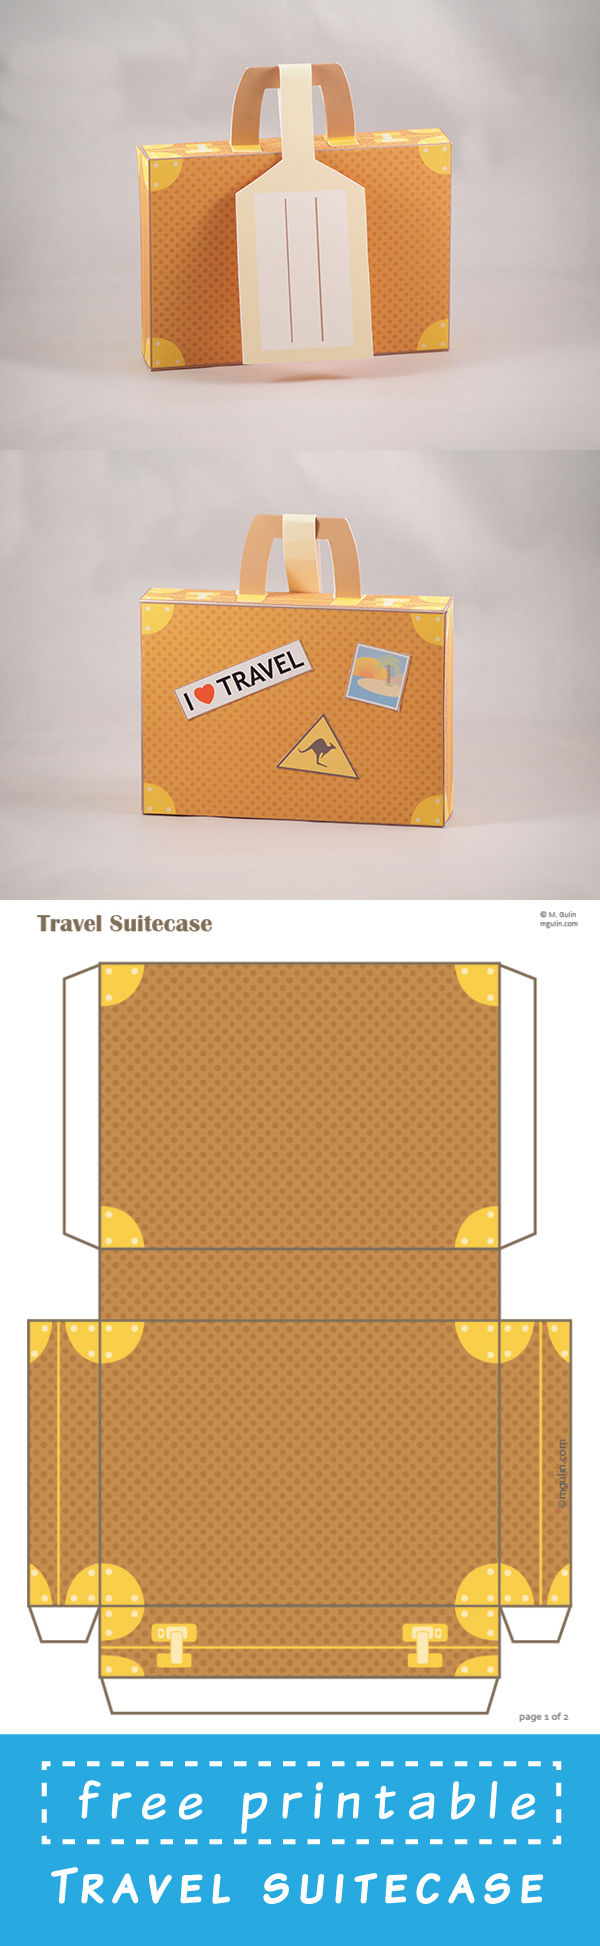 free printable suitcase template just dowload and assemble more